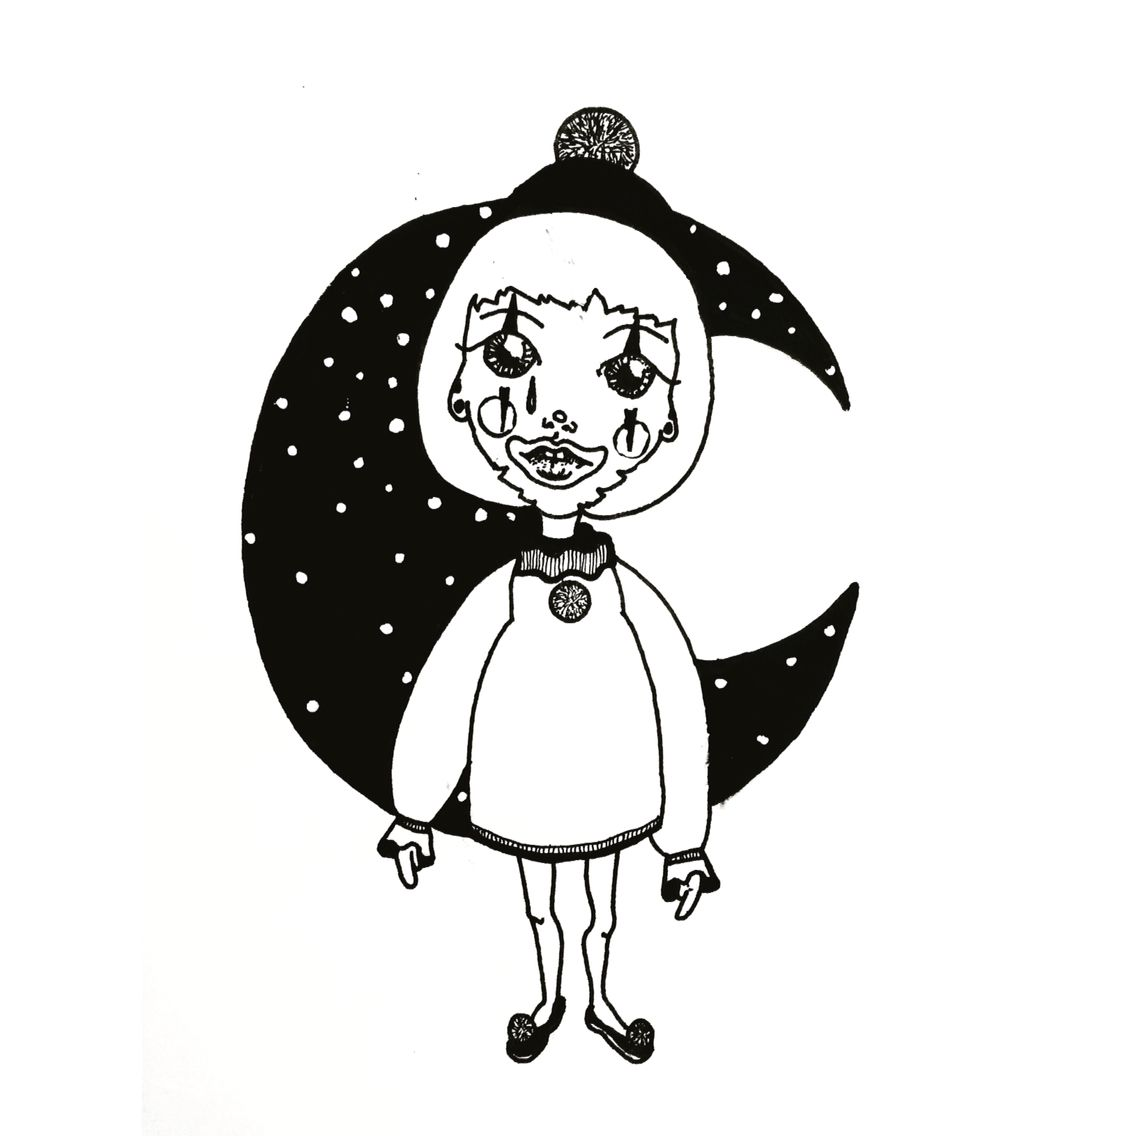 Illustration - Fanny Mazenoux - Mamie Loup http://mazenouxfanny.tumblr.com/ https://www.facebook.com/FannyMazenoux.Illustration